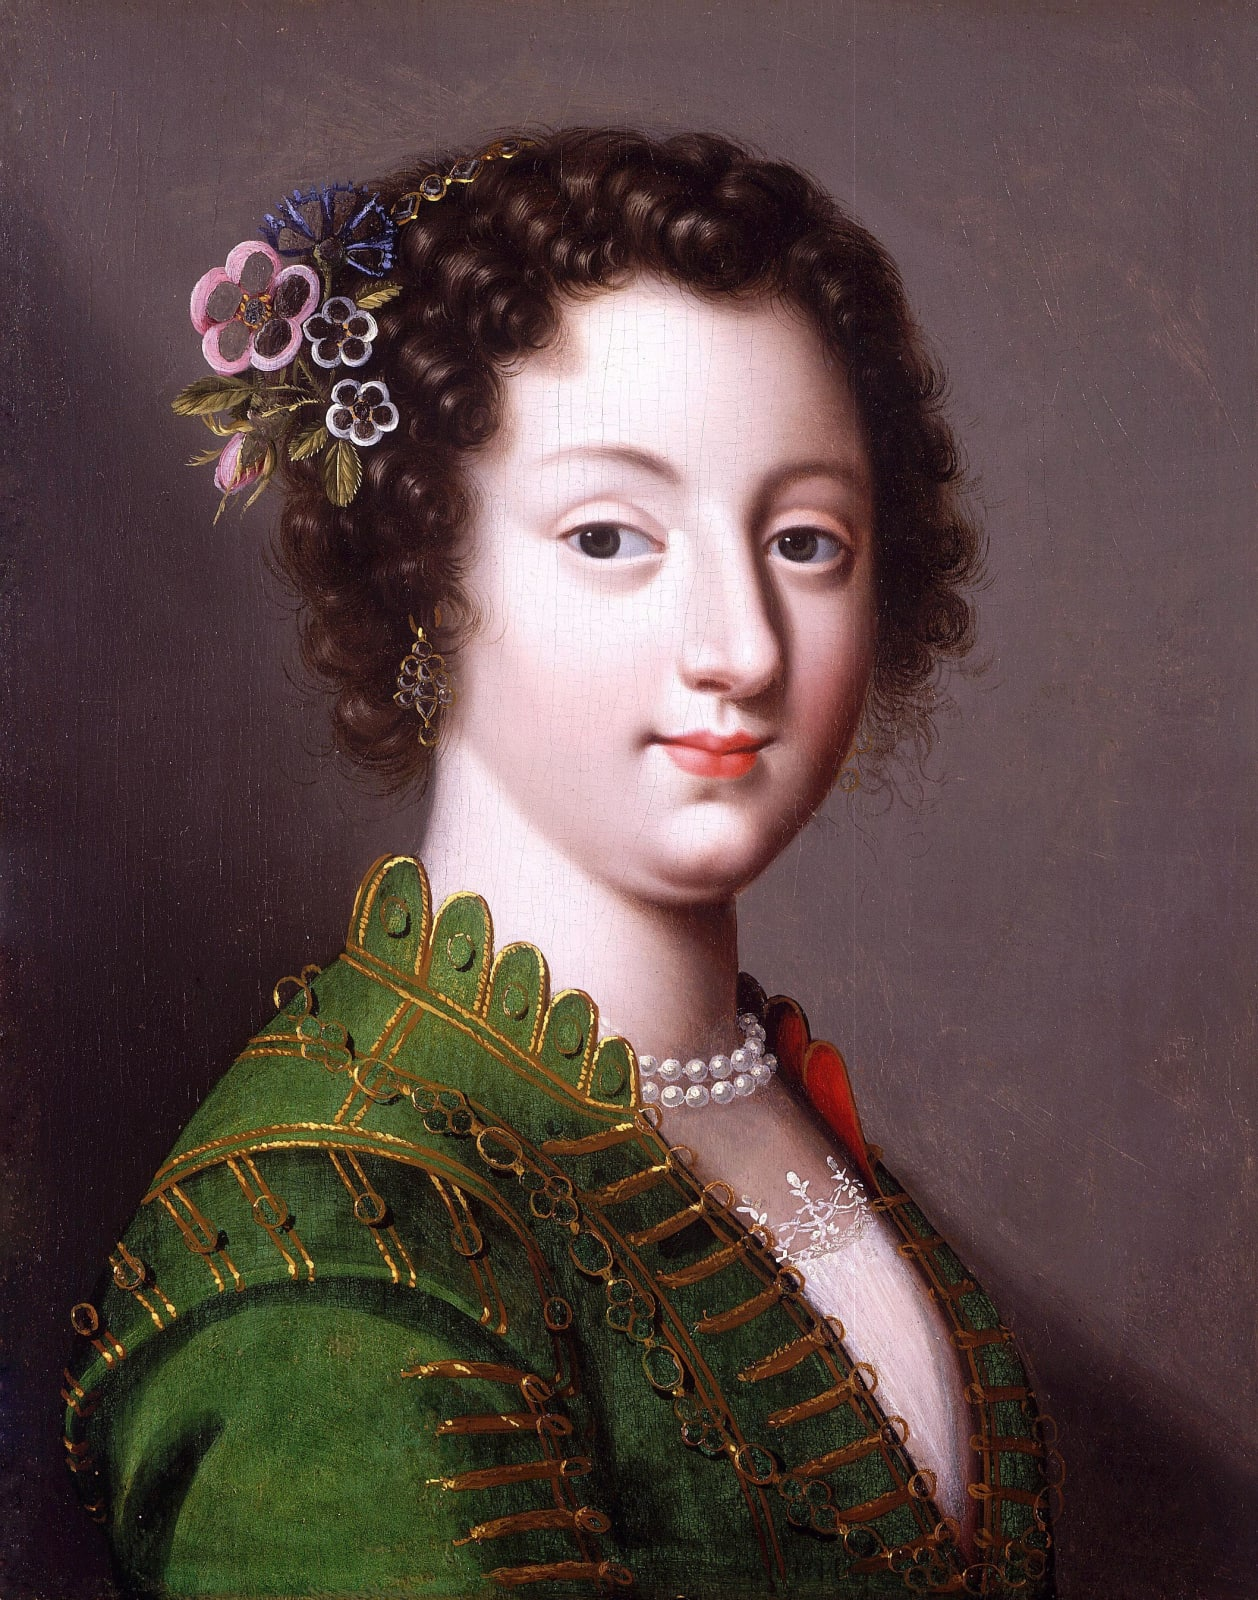 Claude Deruet (1588 – 1660), A Young French Noblewoman, circa 1625 - 1630